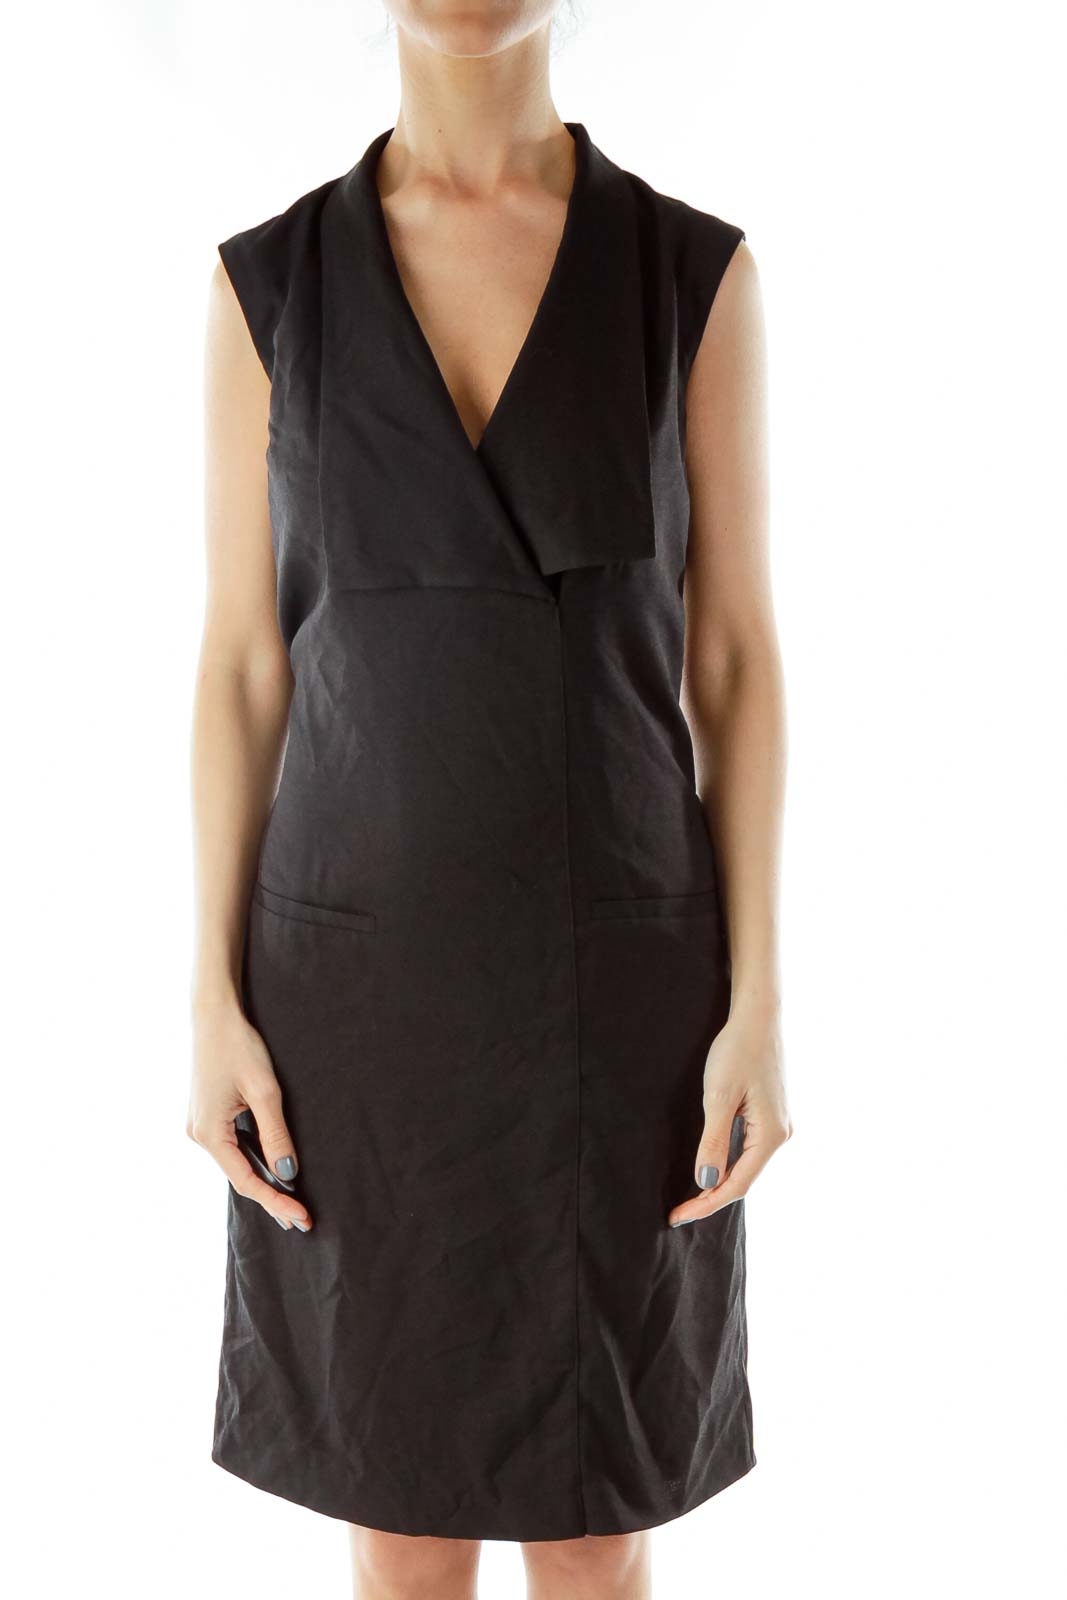 Black Work Dress with Collar Front